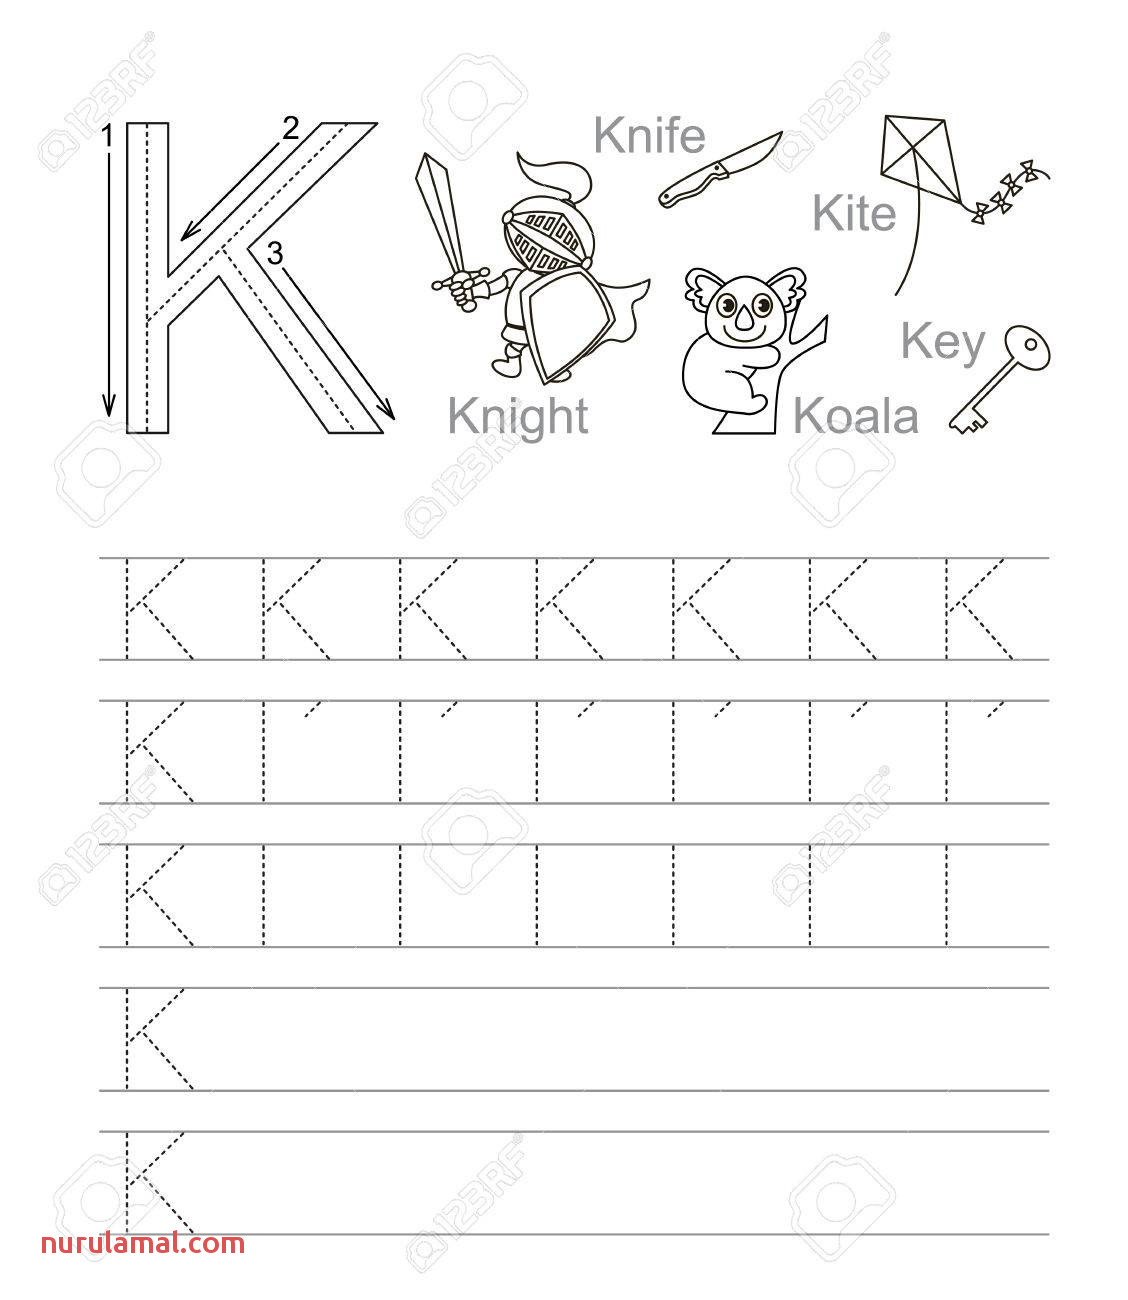 Letter Worksheet Tracing Worksheets Printablee